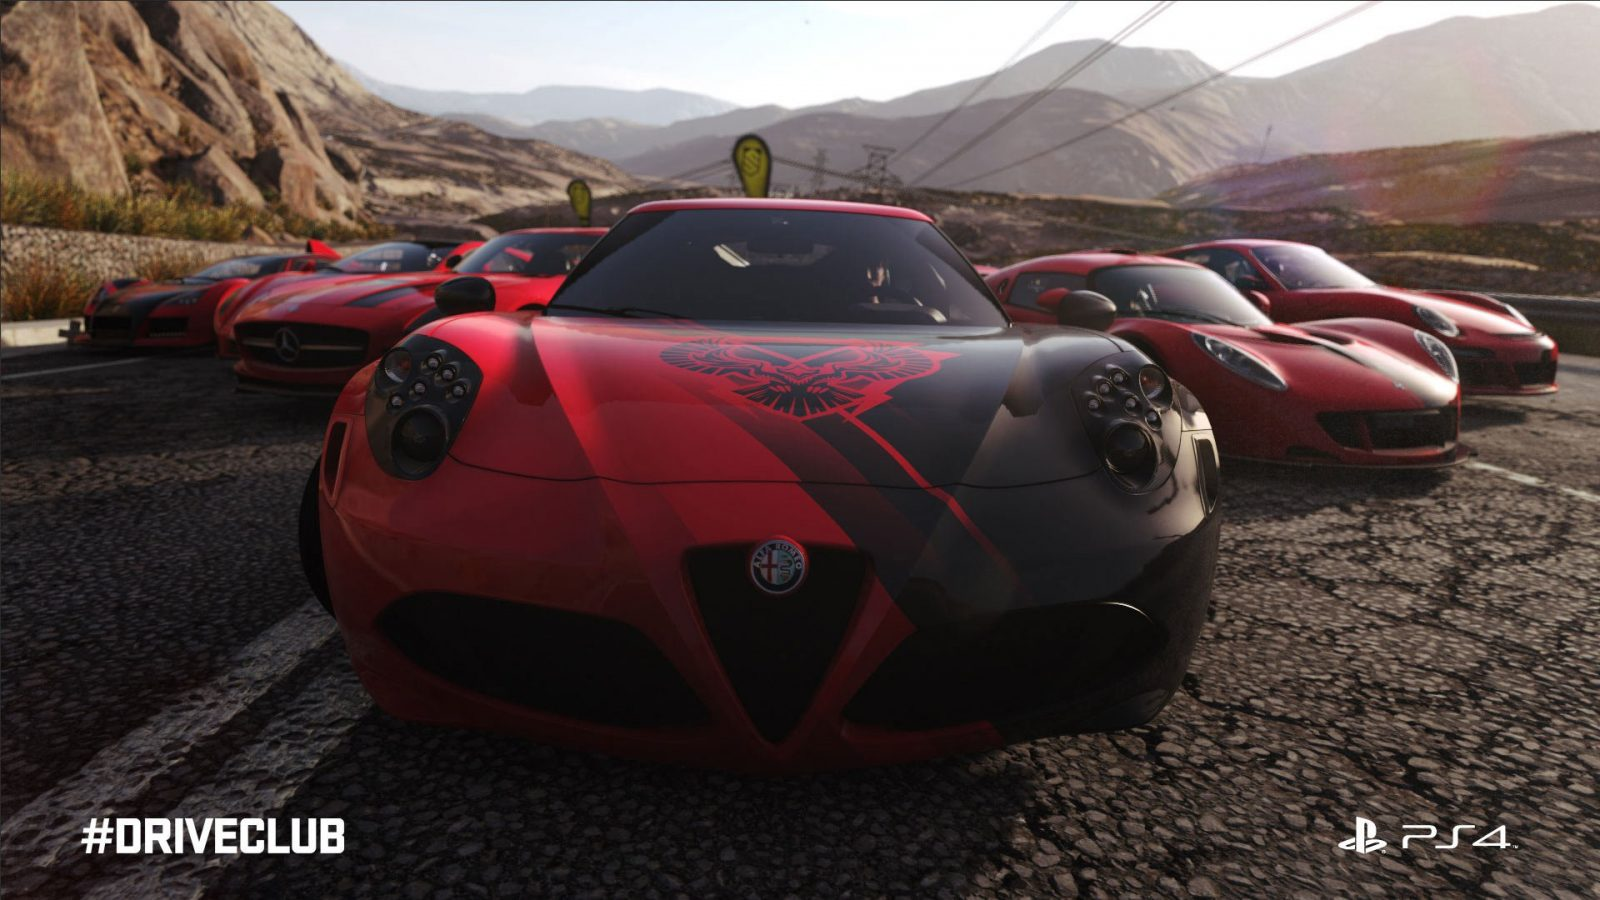 Driveclub Still Available to Buy on NA PSN a Week After Delisting Elsewhere